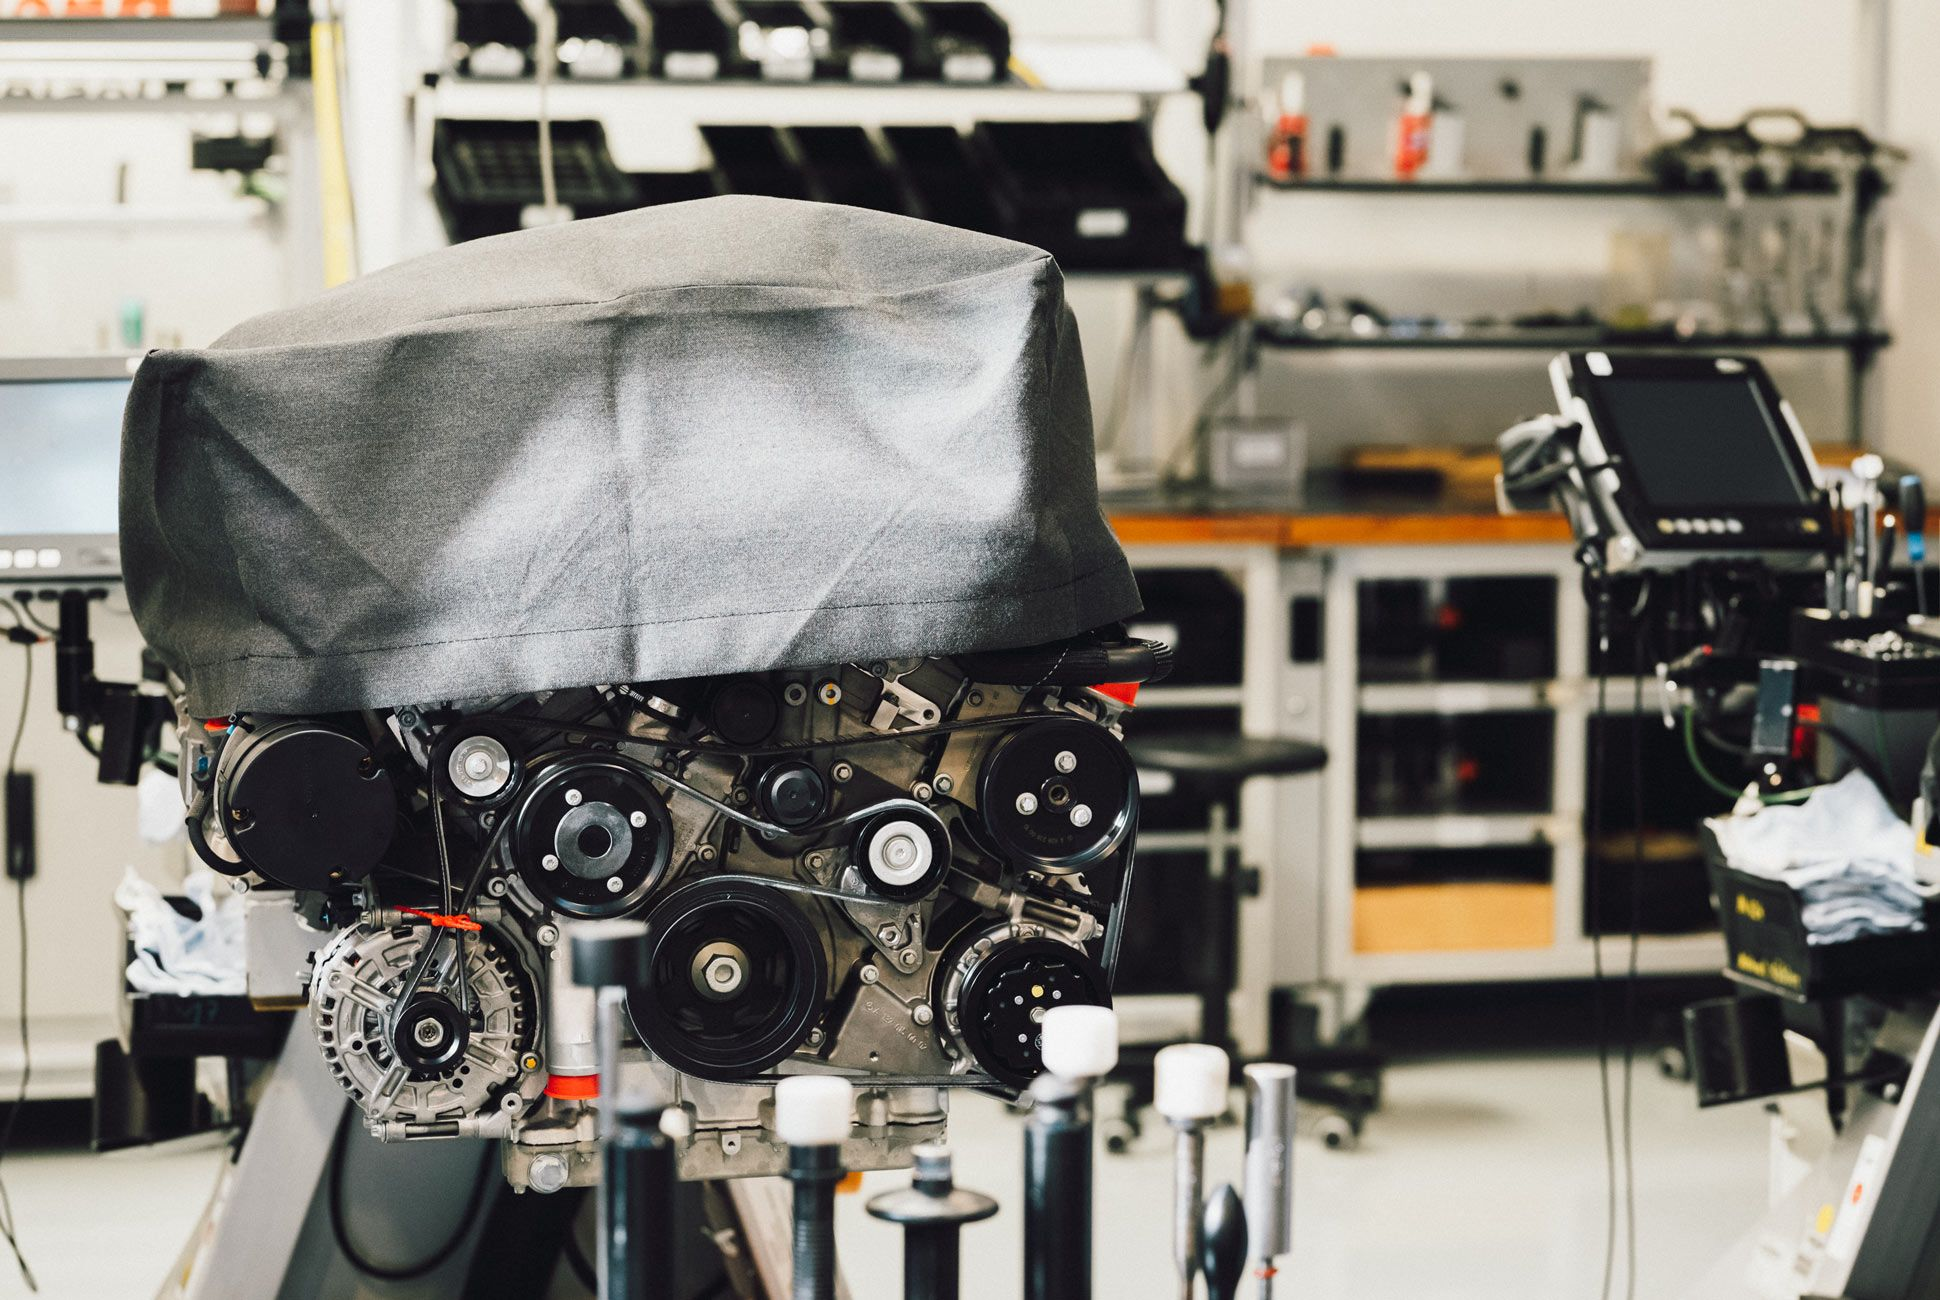 AMG's engine factory is also responsible for making Pagani's 6-liter twin-turbo V12 that will end up producing 730 horsepower when bolted in the back of the Huayra.